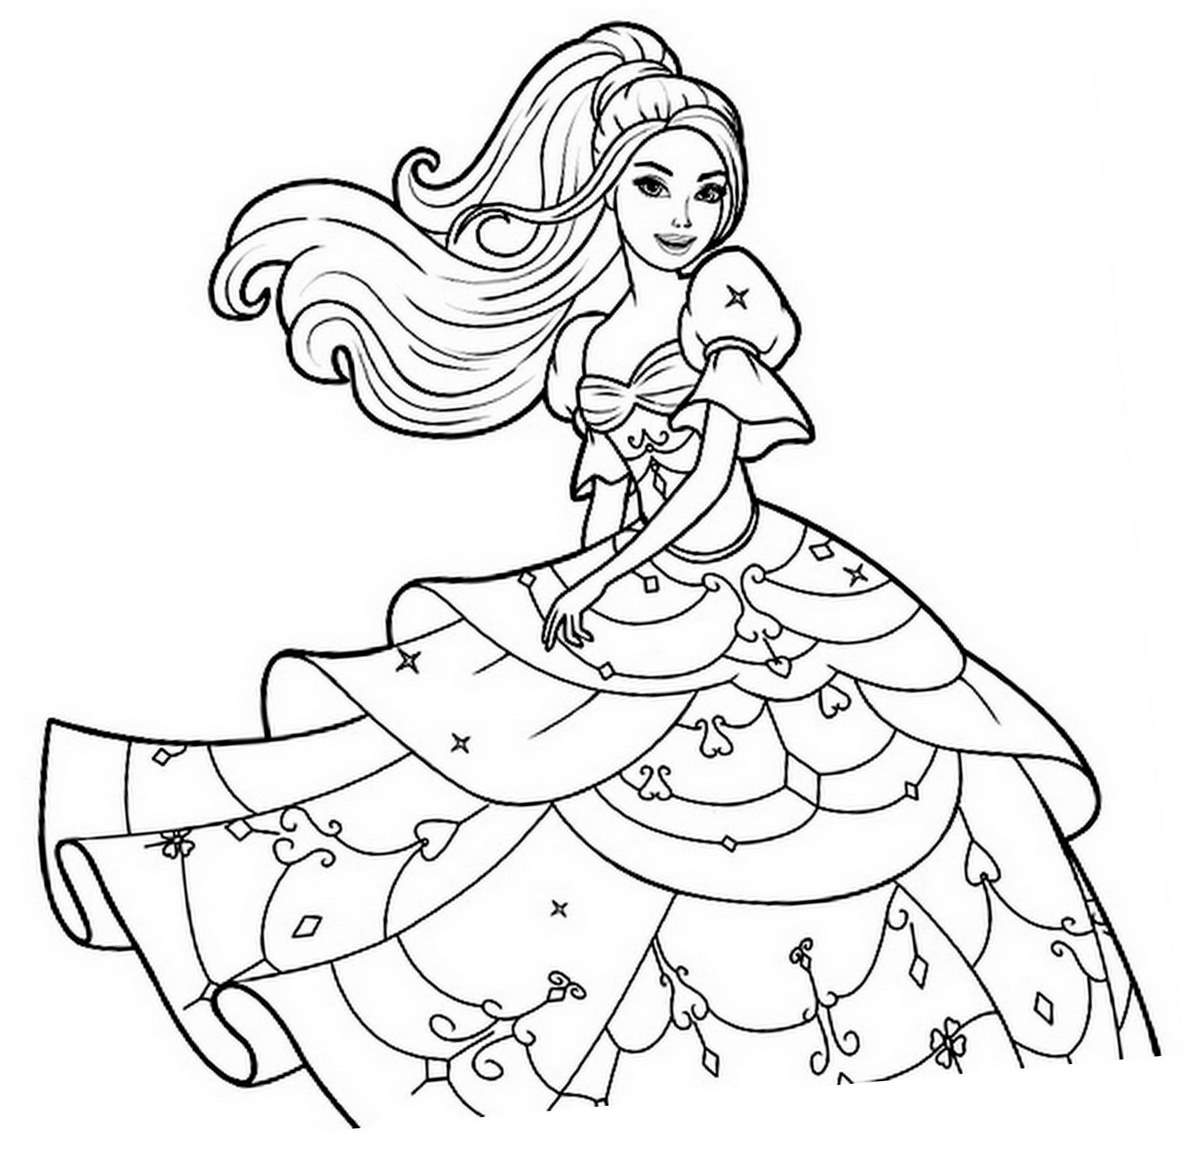 image=princesses coloriage princesse 1 1